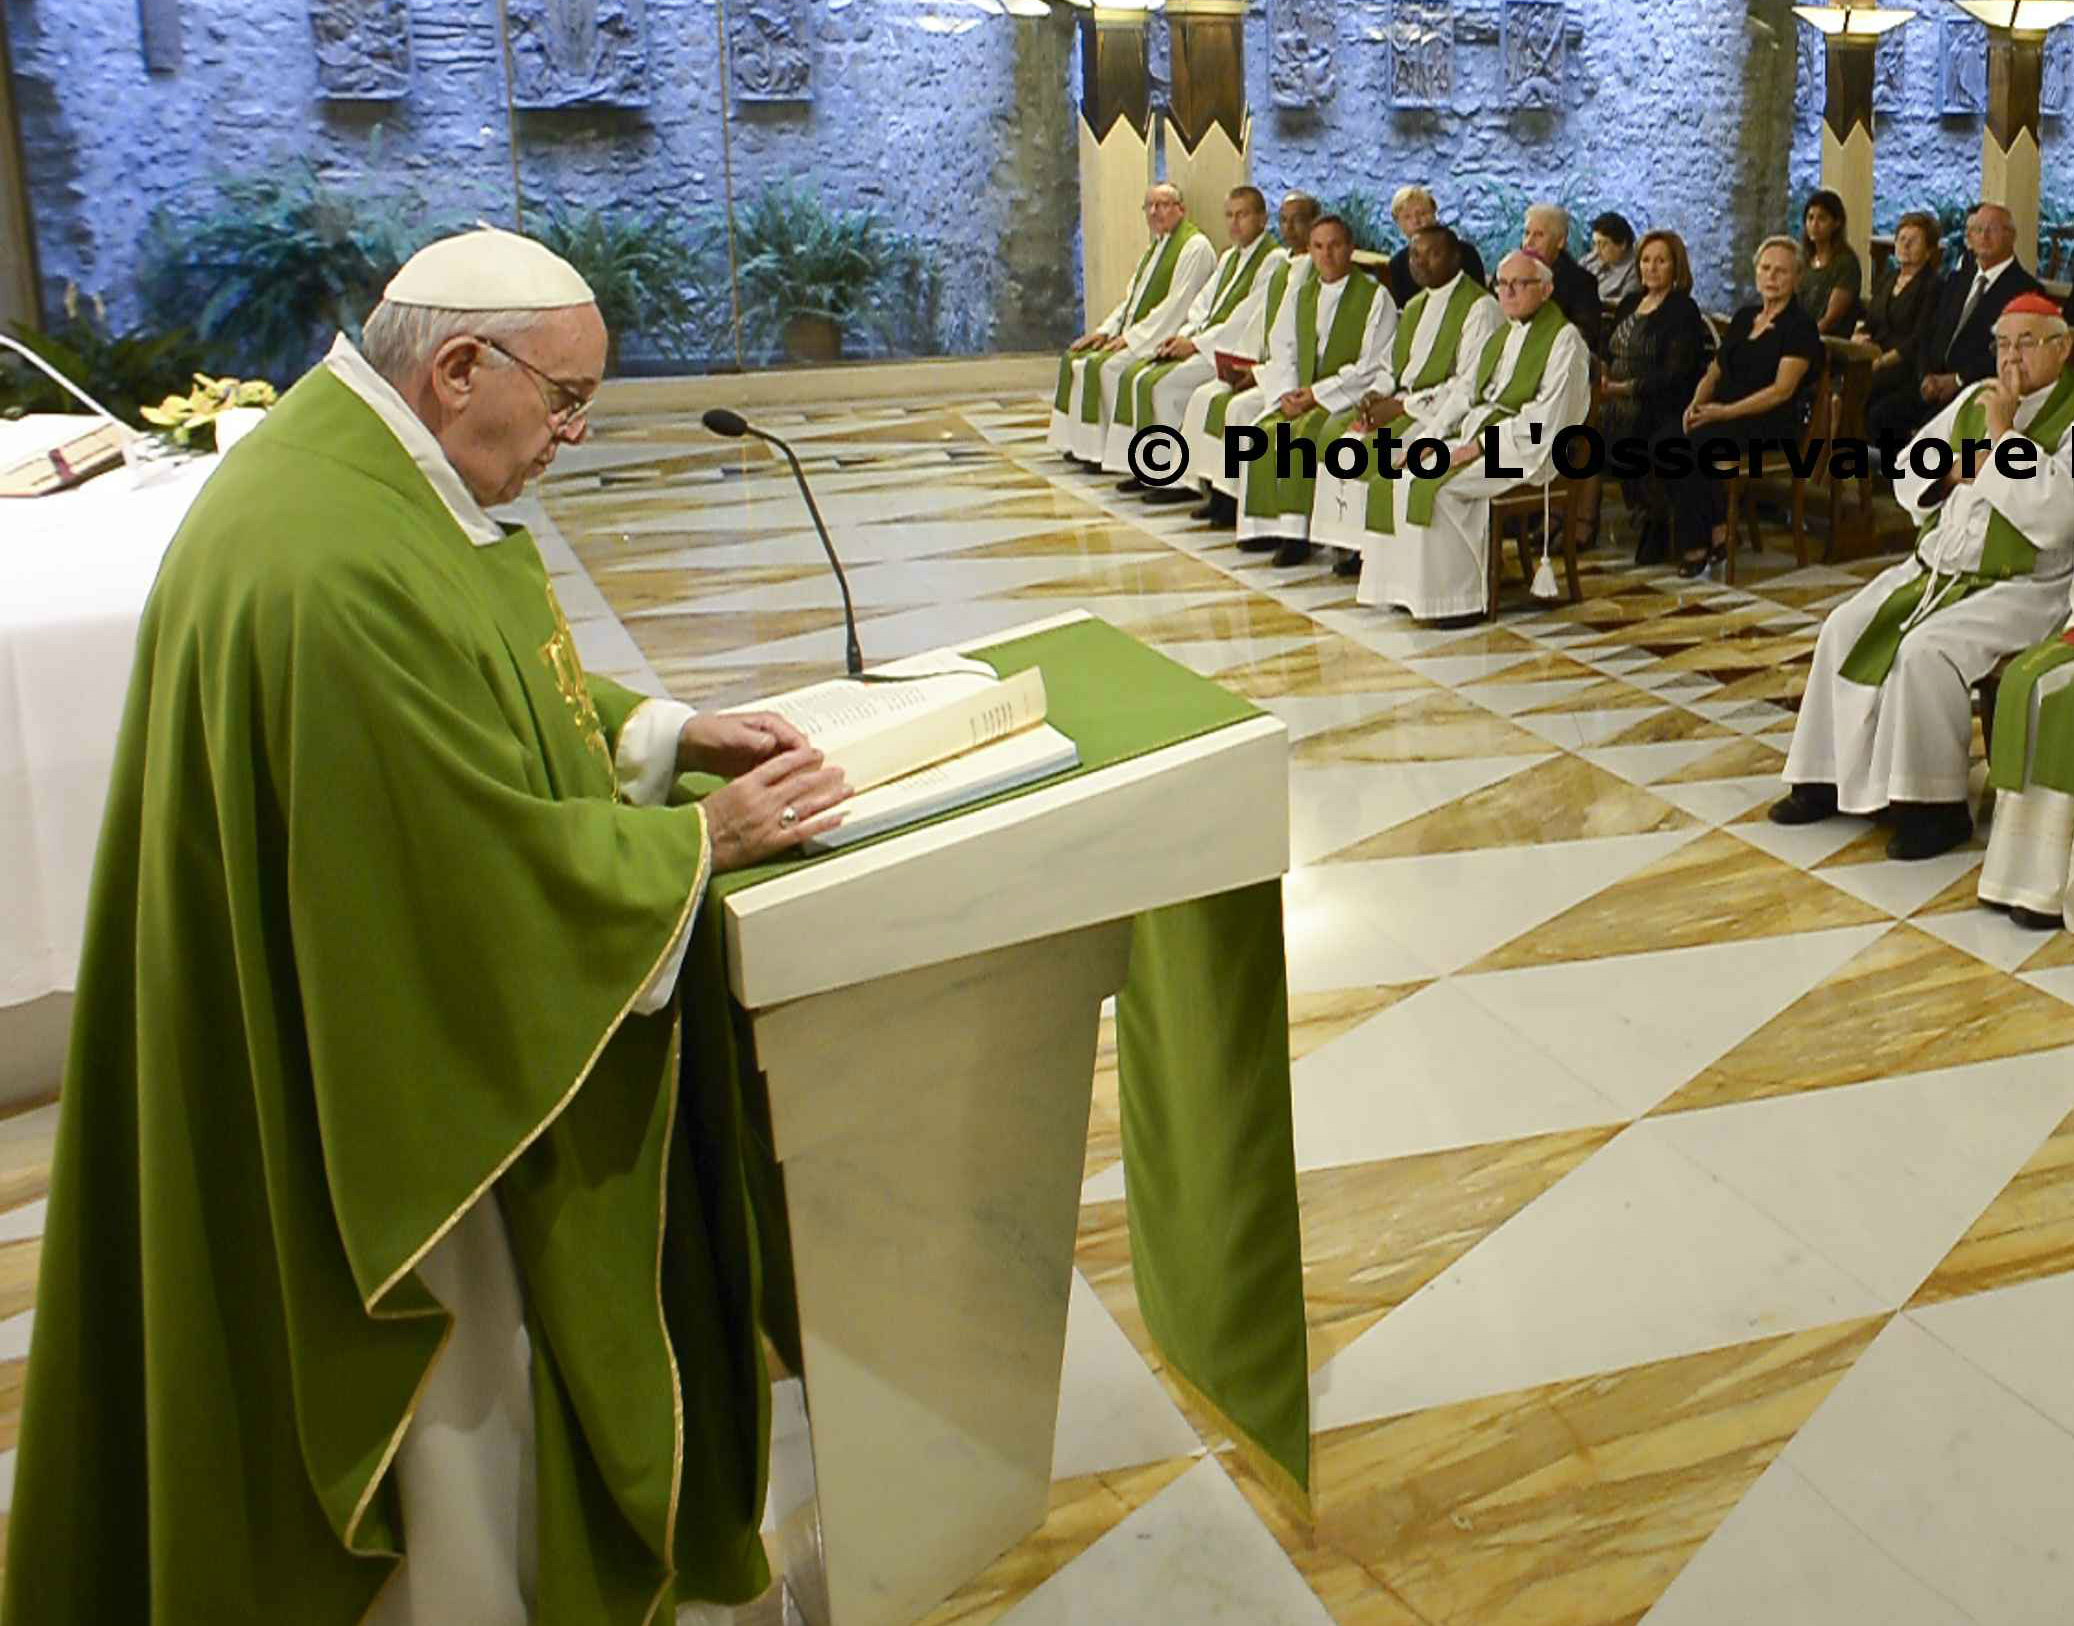 Pope Francis during today's Morning Mass in Santa Marta